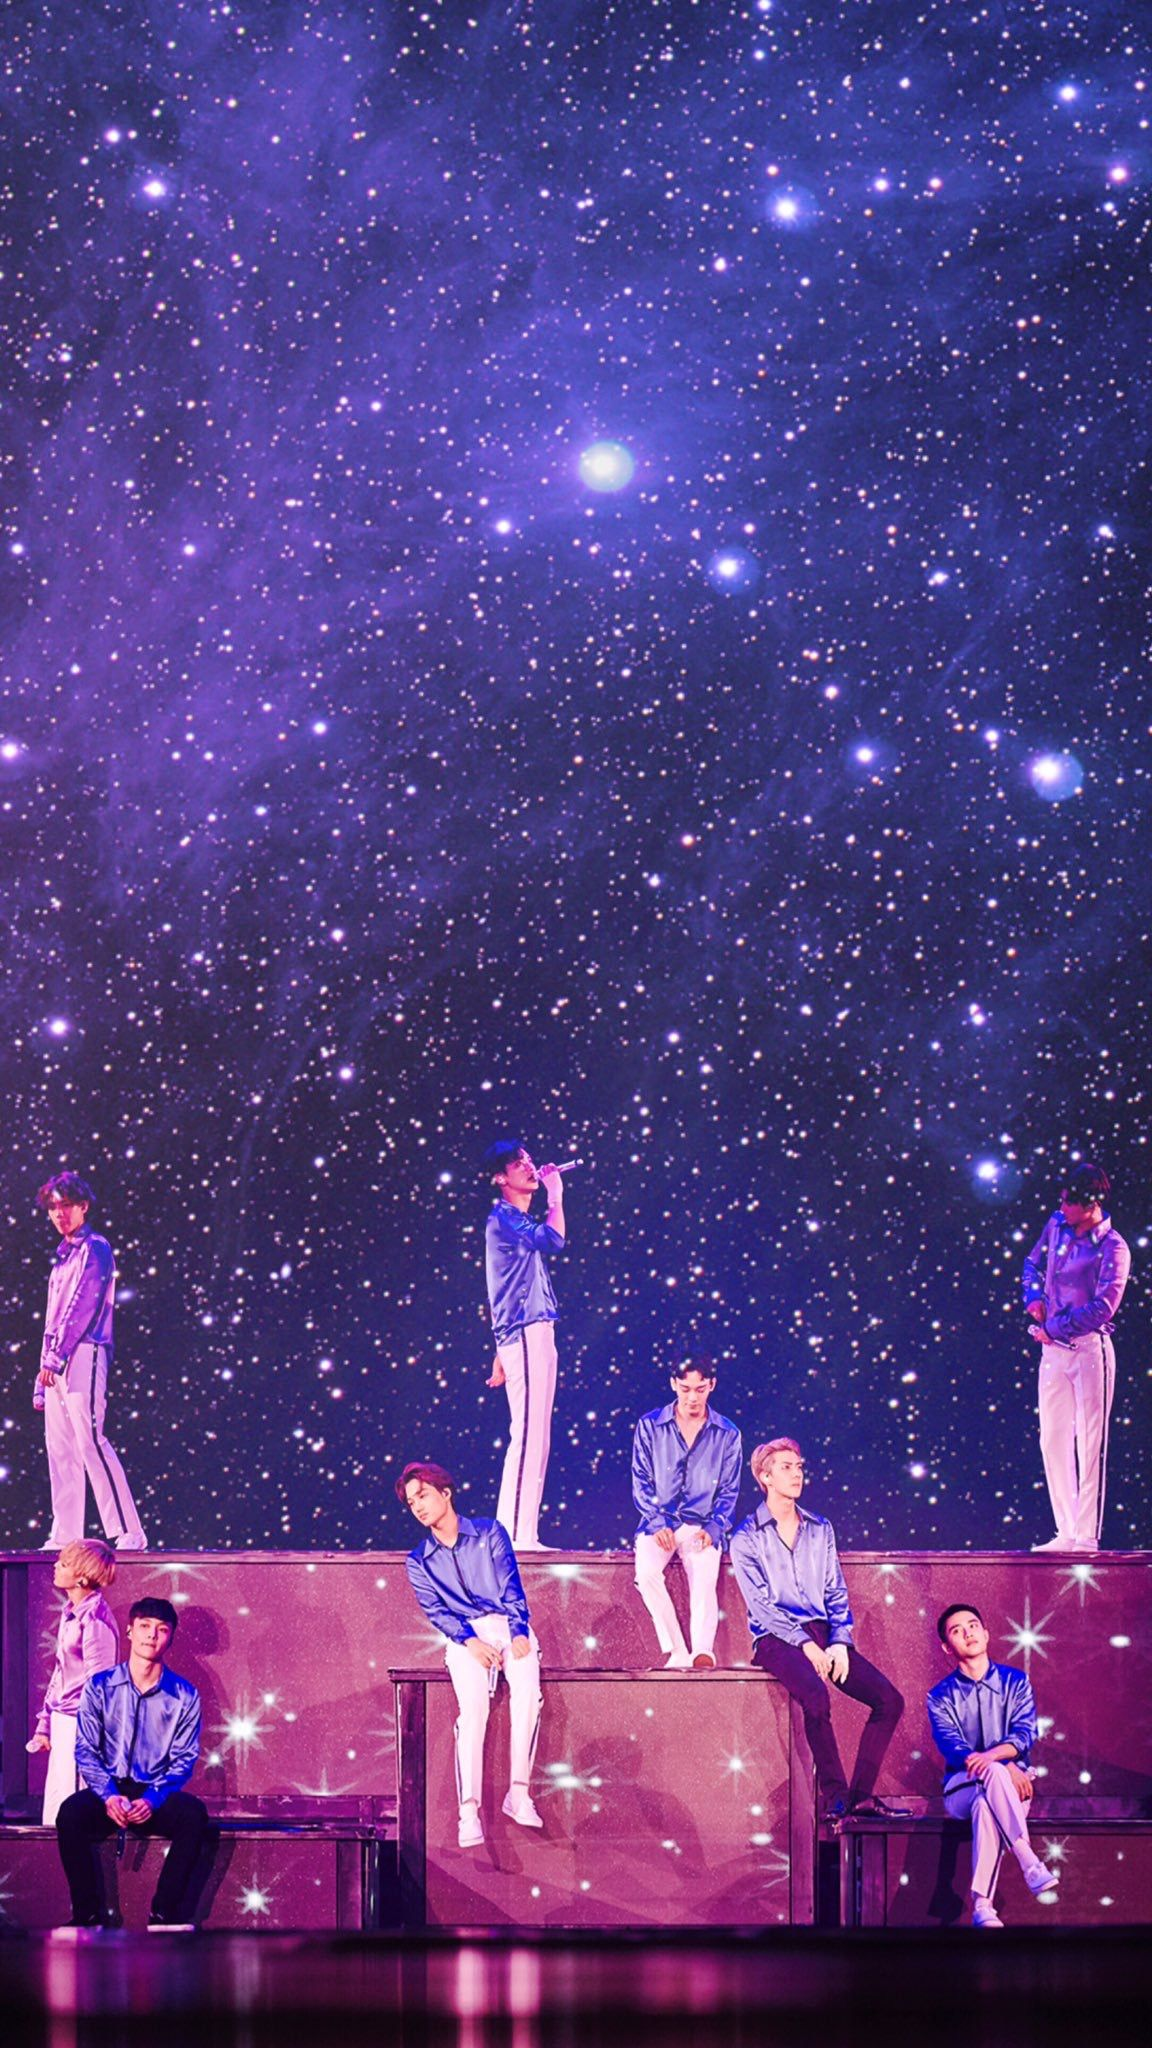 EXO Wallpaper | EXO | Pinterest | Exo, Wallpaper and Kpop